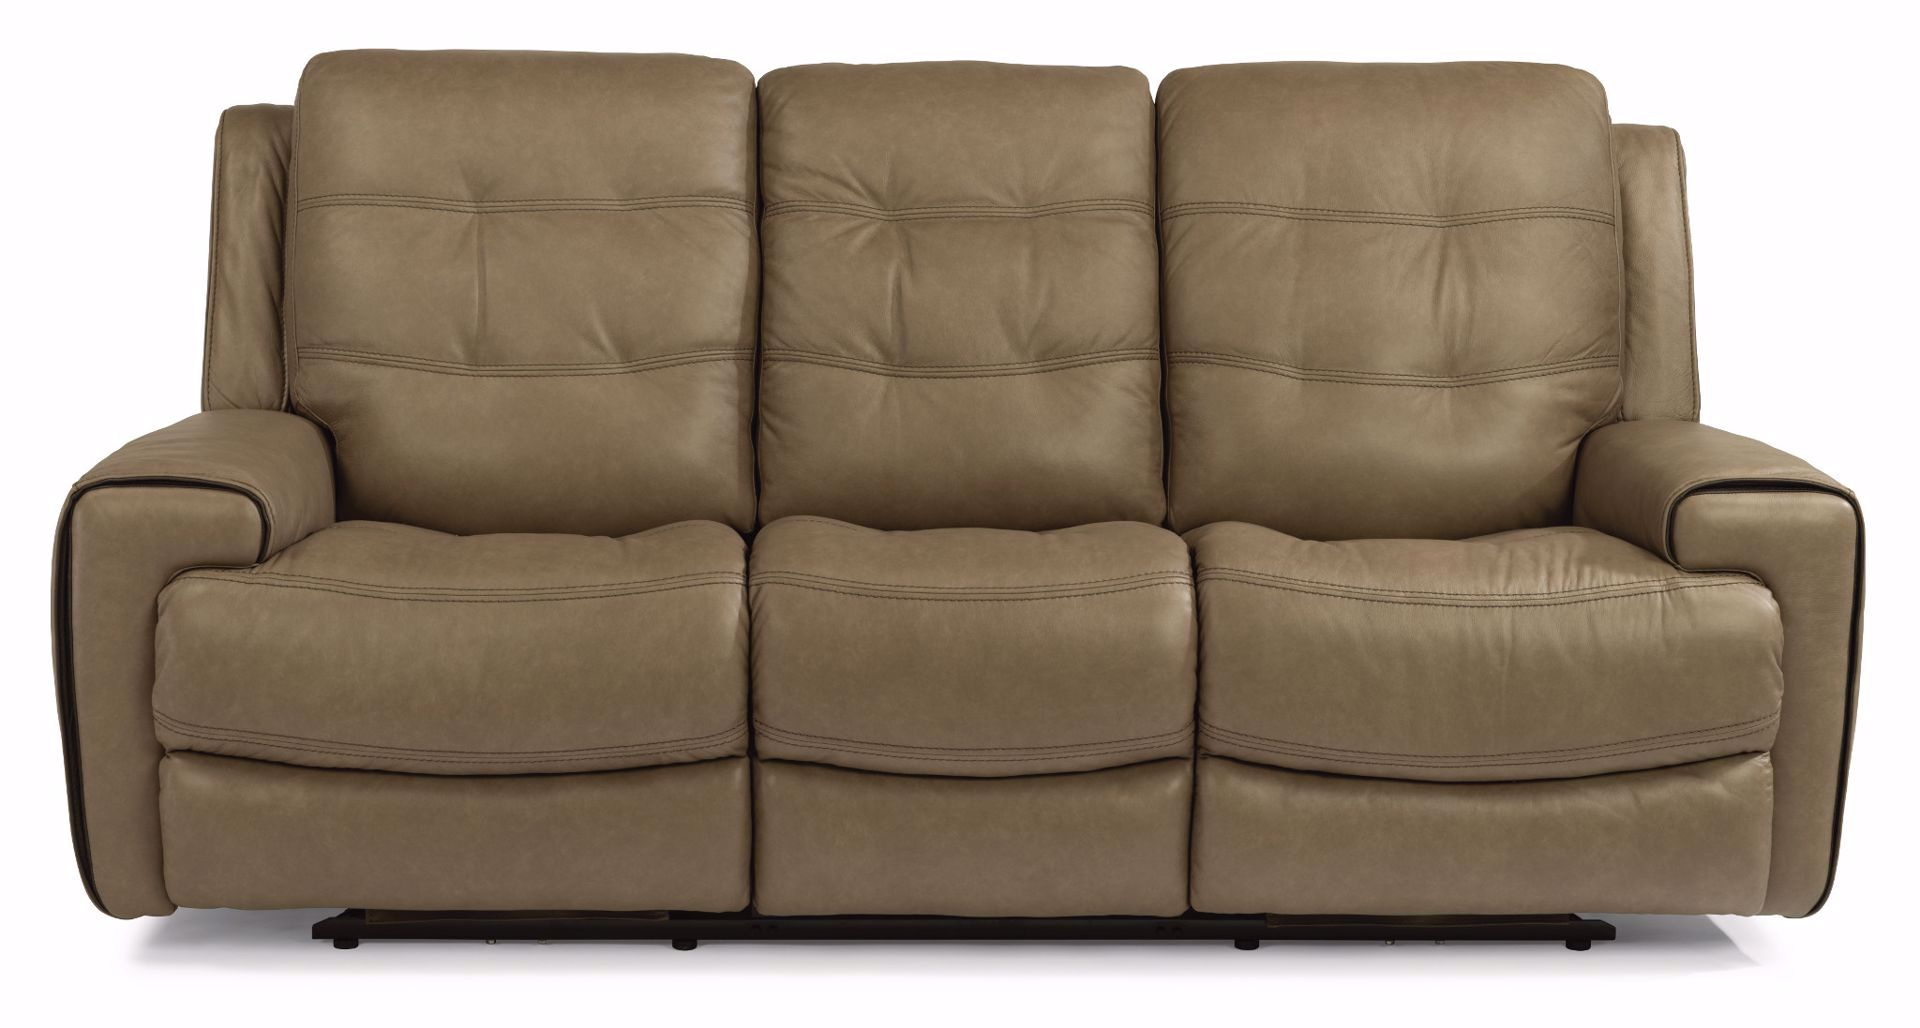 Wicklow Power Reclining Leather Sofa With Power Headrest In Charleston Power Reclining Sofas (View 14 of 15)